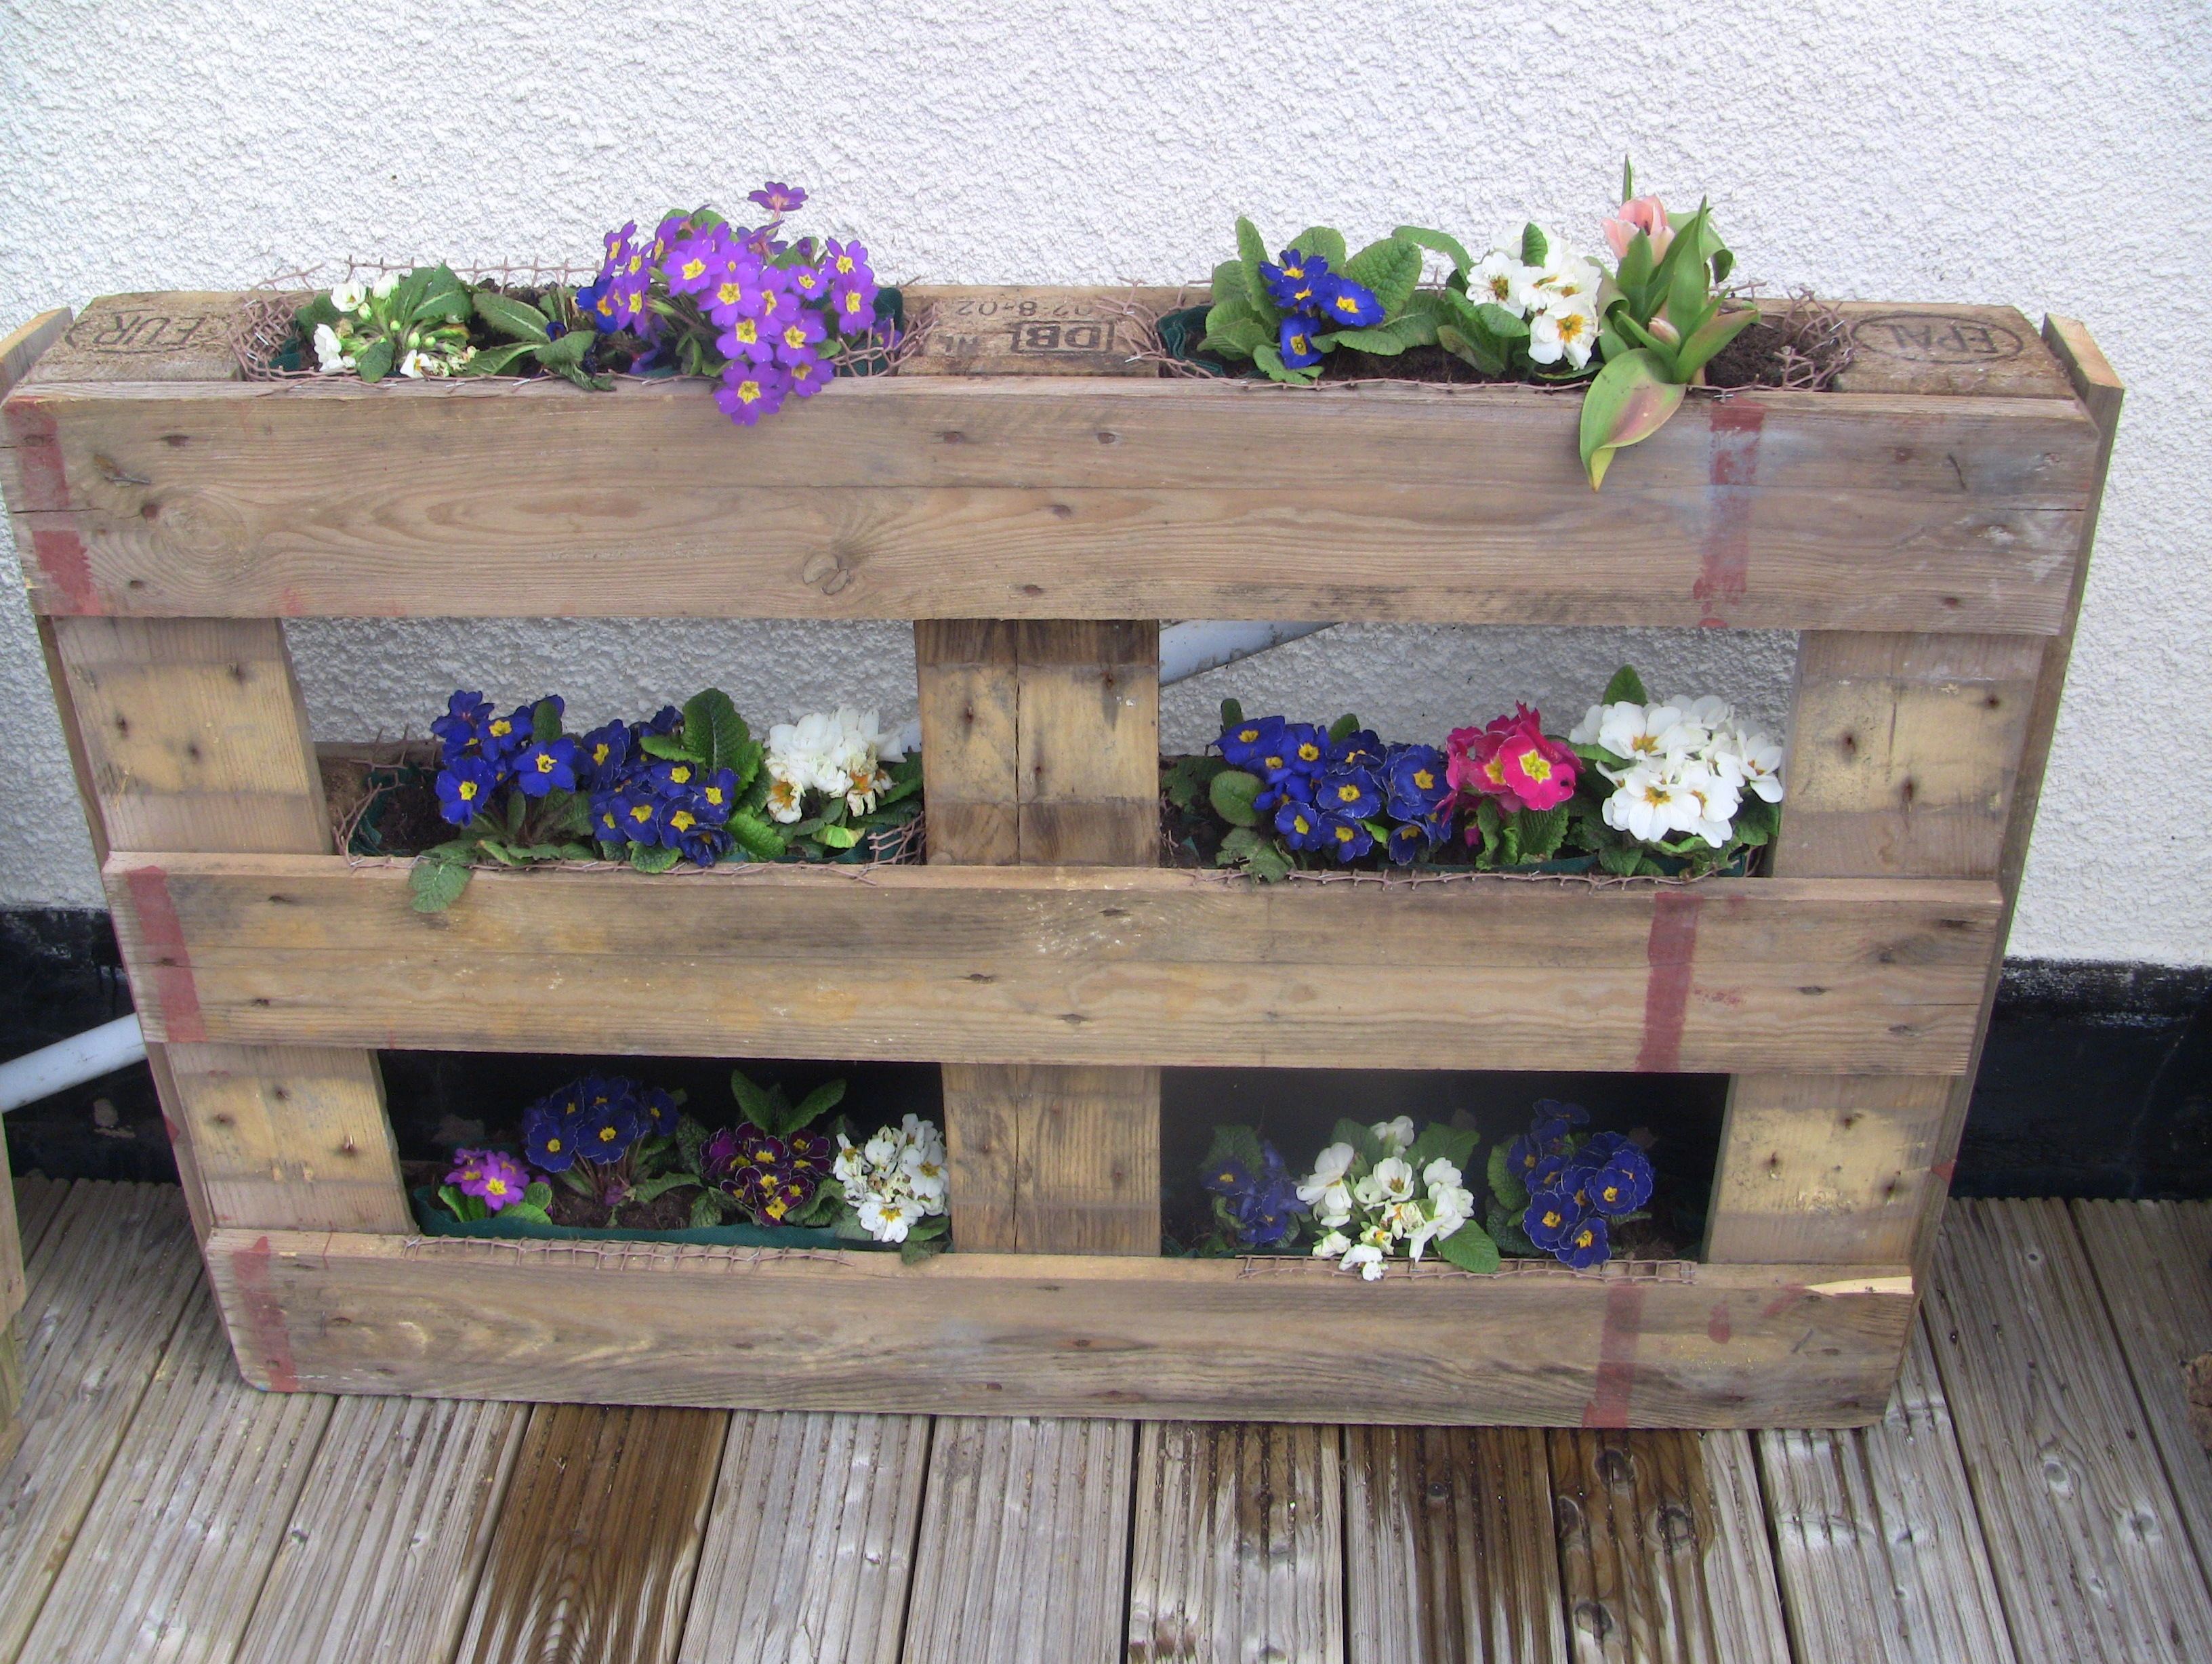 wooden pallet planted with spring flowers - Garden Ideas With Pallets